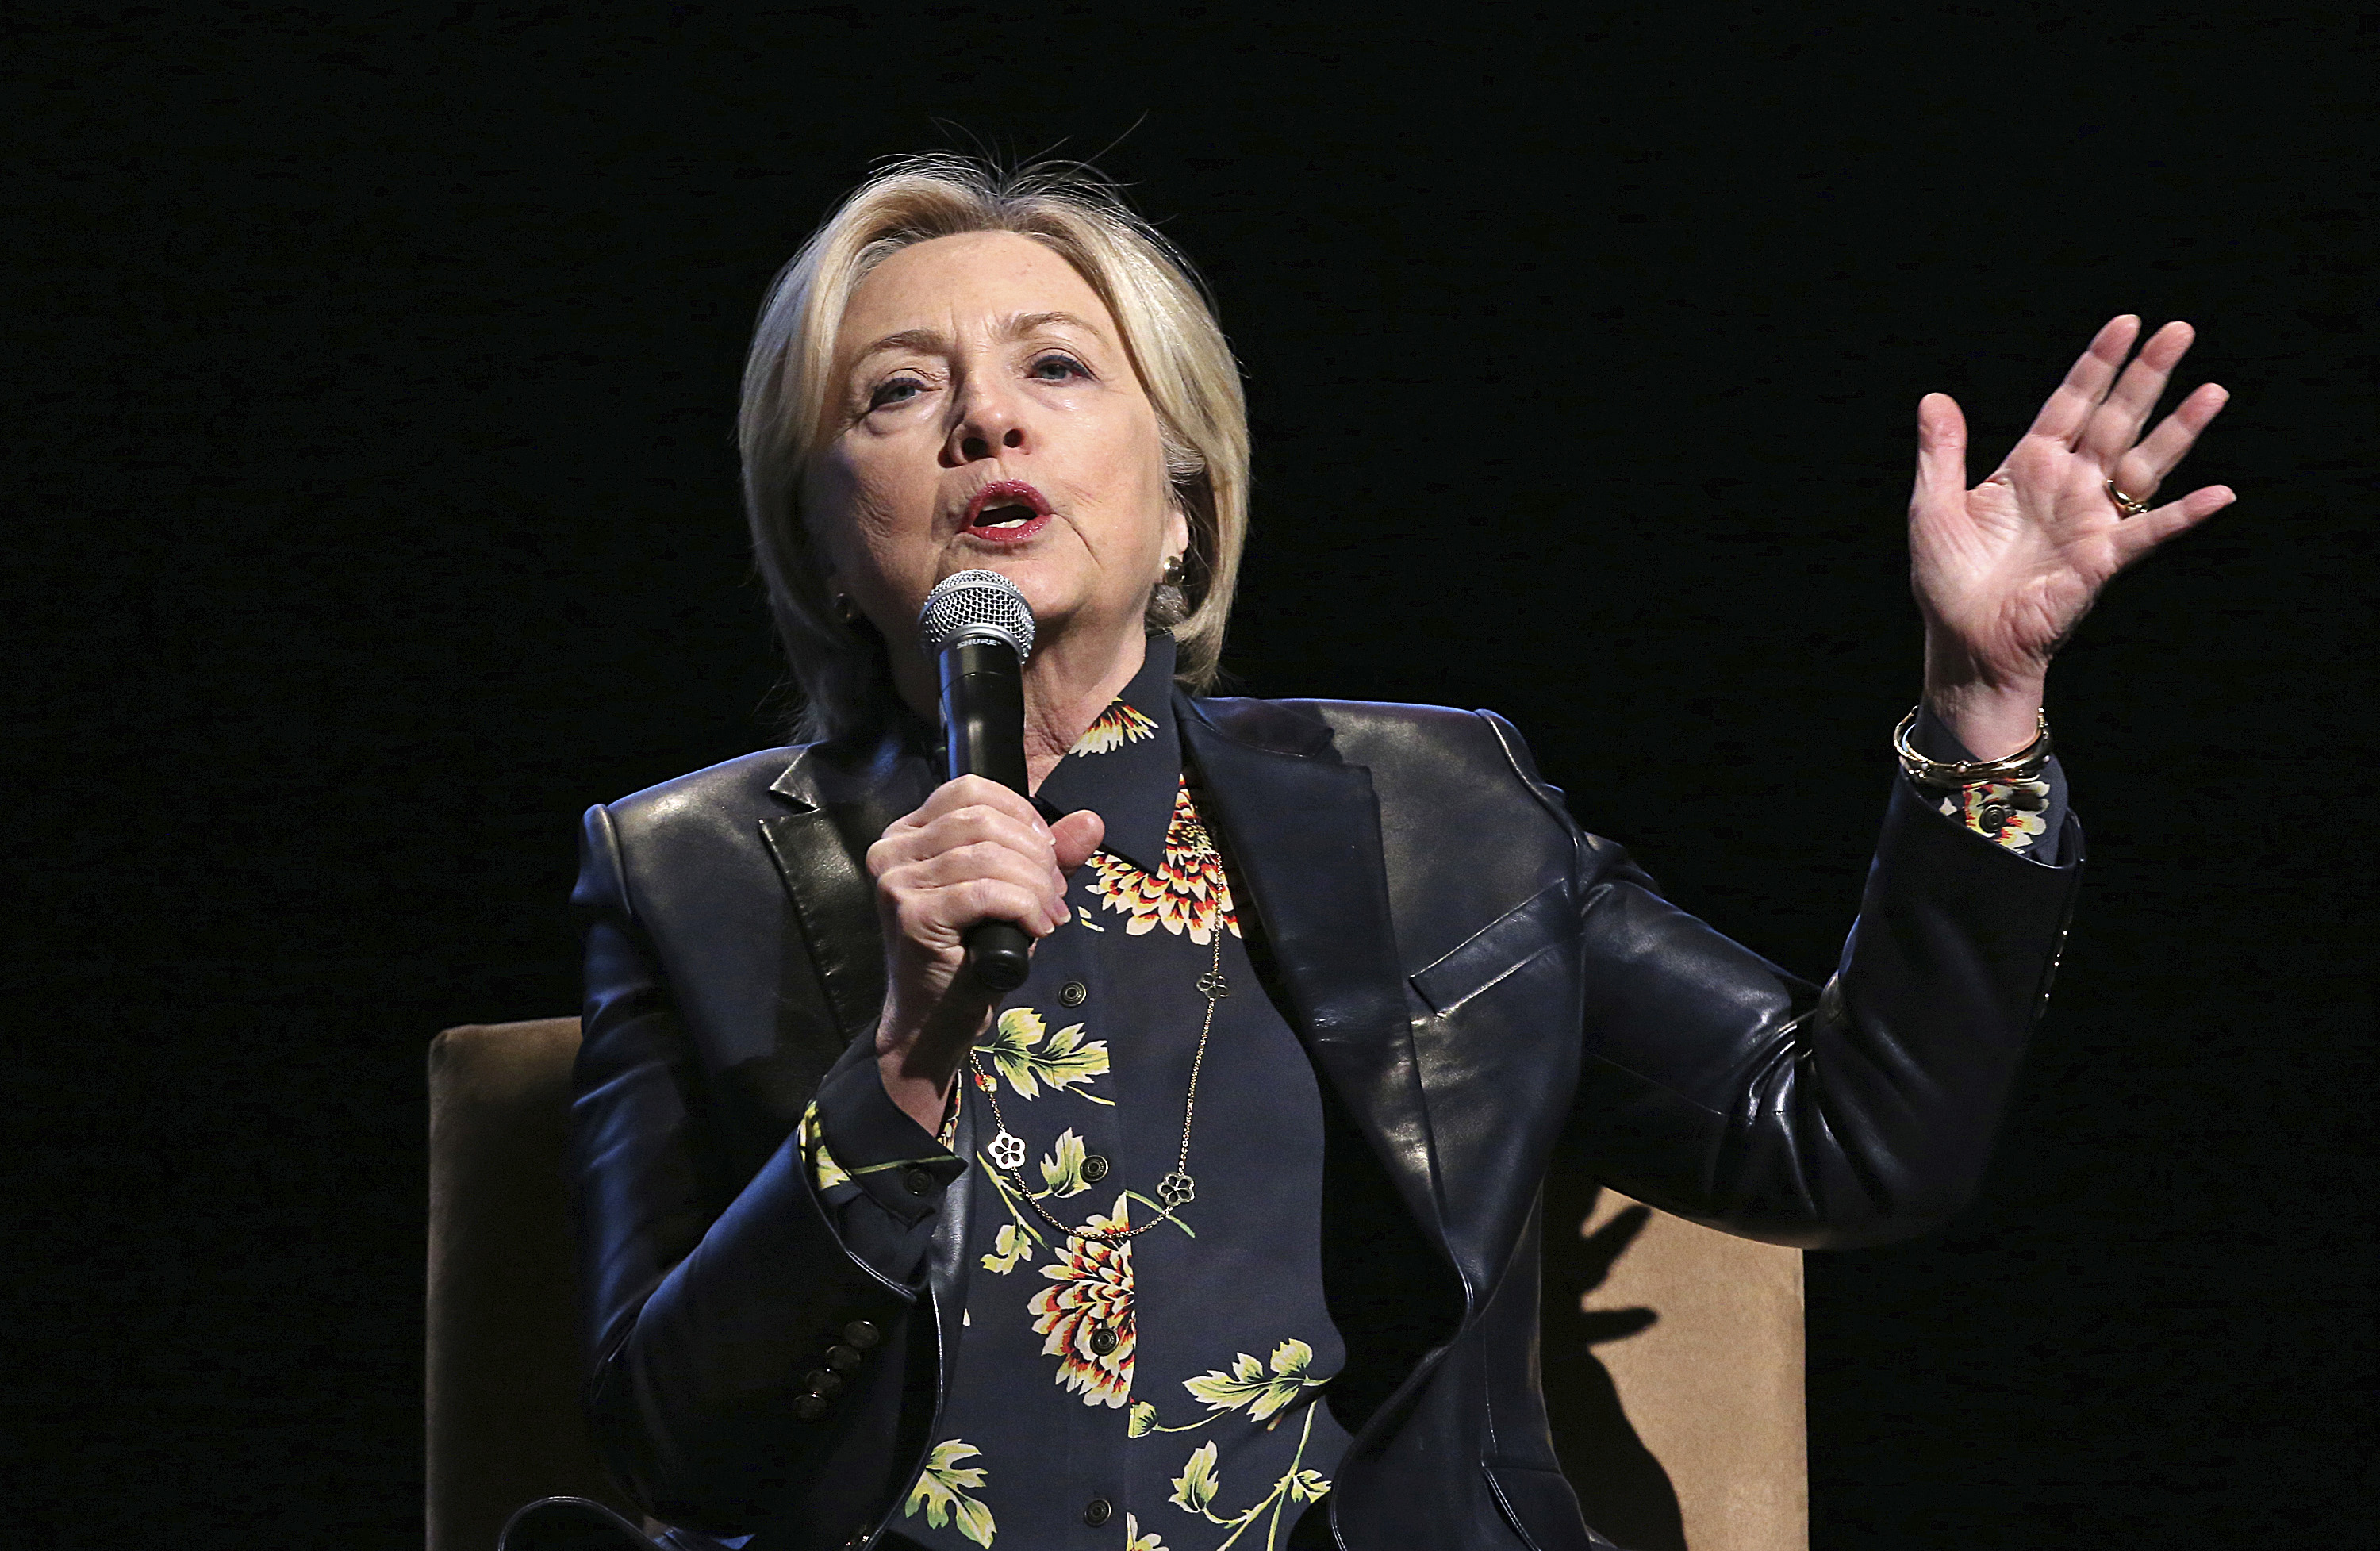 Liberal outrage erupts after Vanity Fair pokes fun at Hillary Clinton